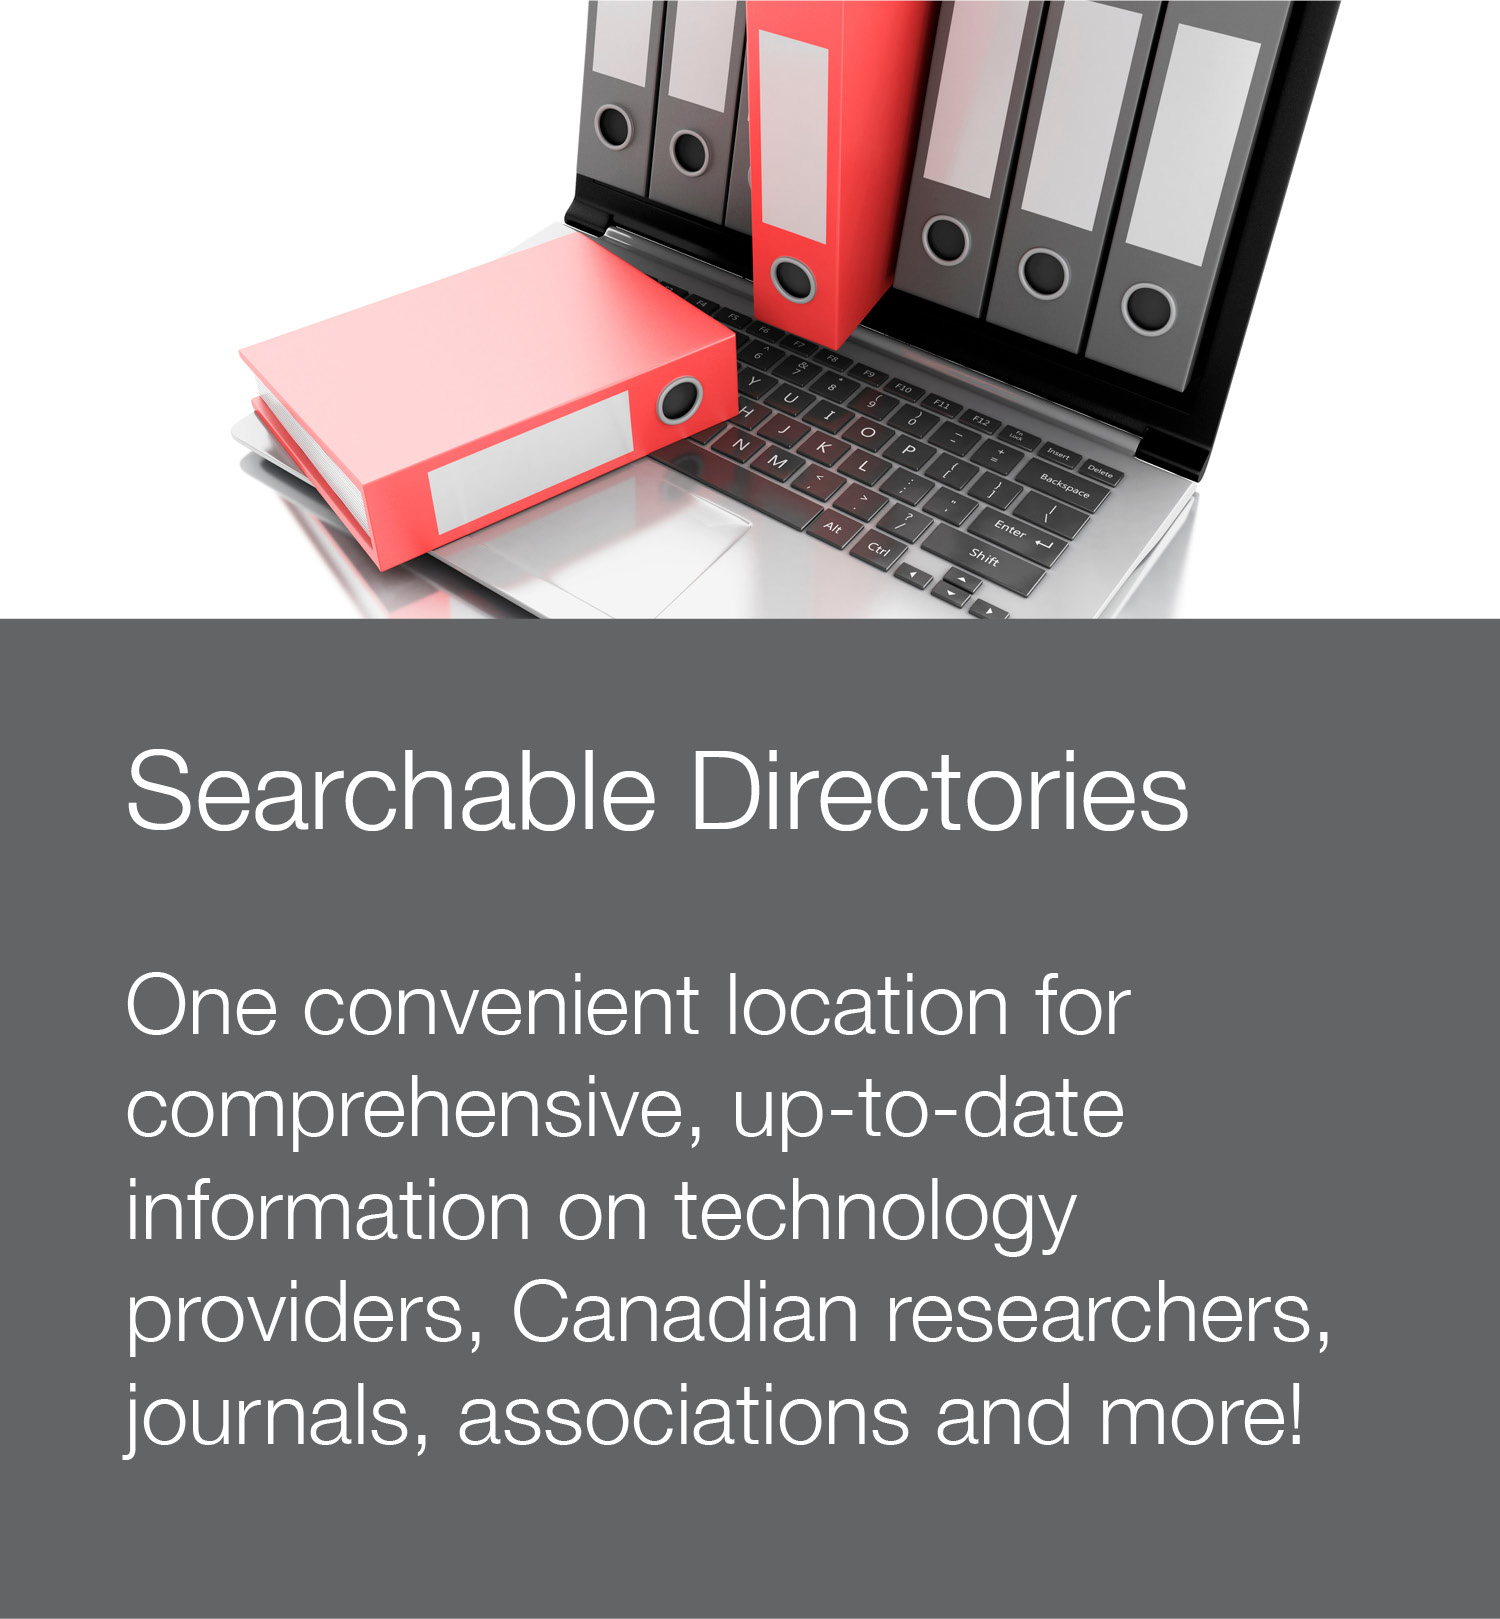 Stock photo to illustrate searchable directories